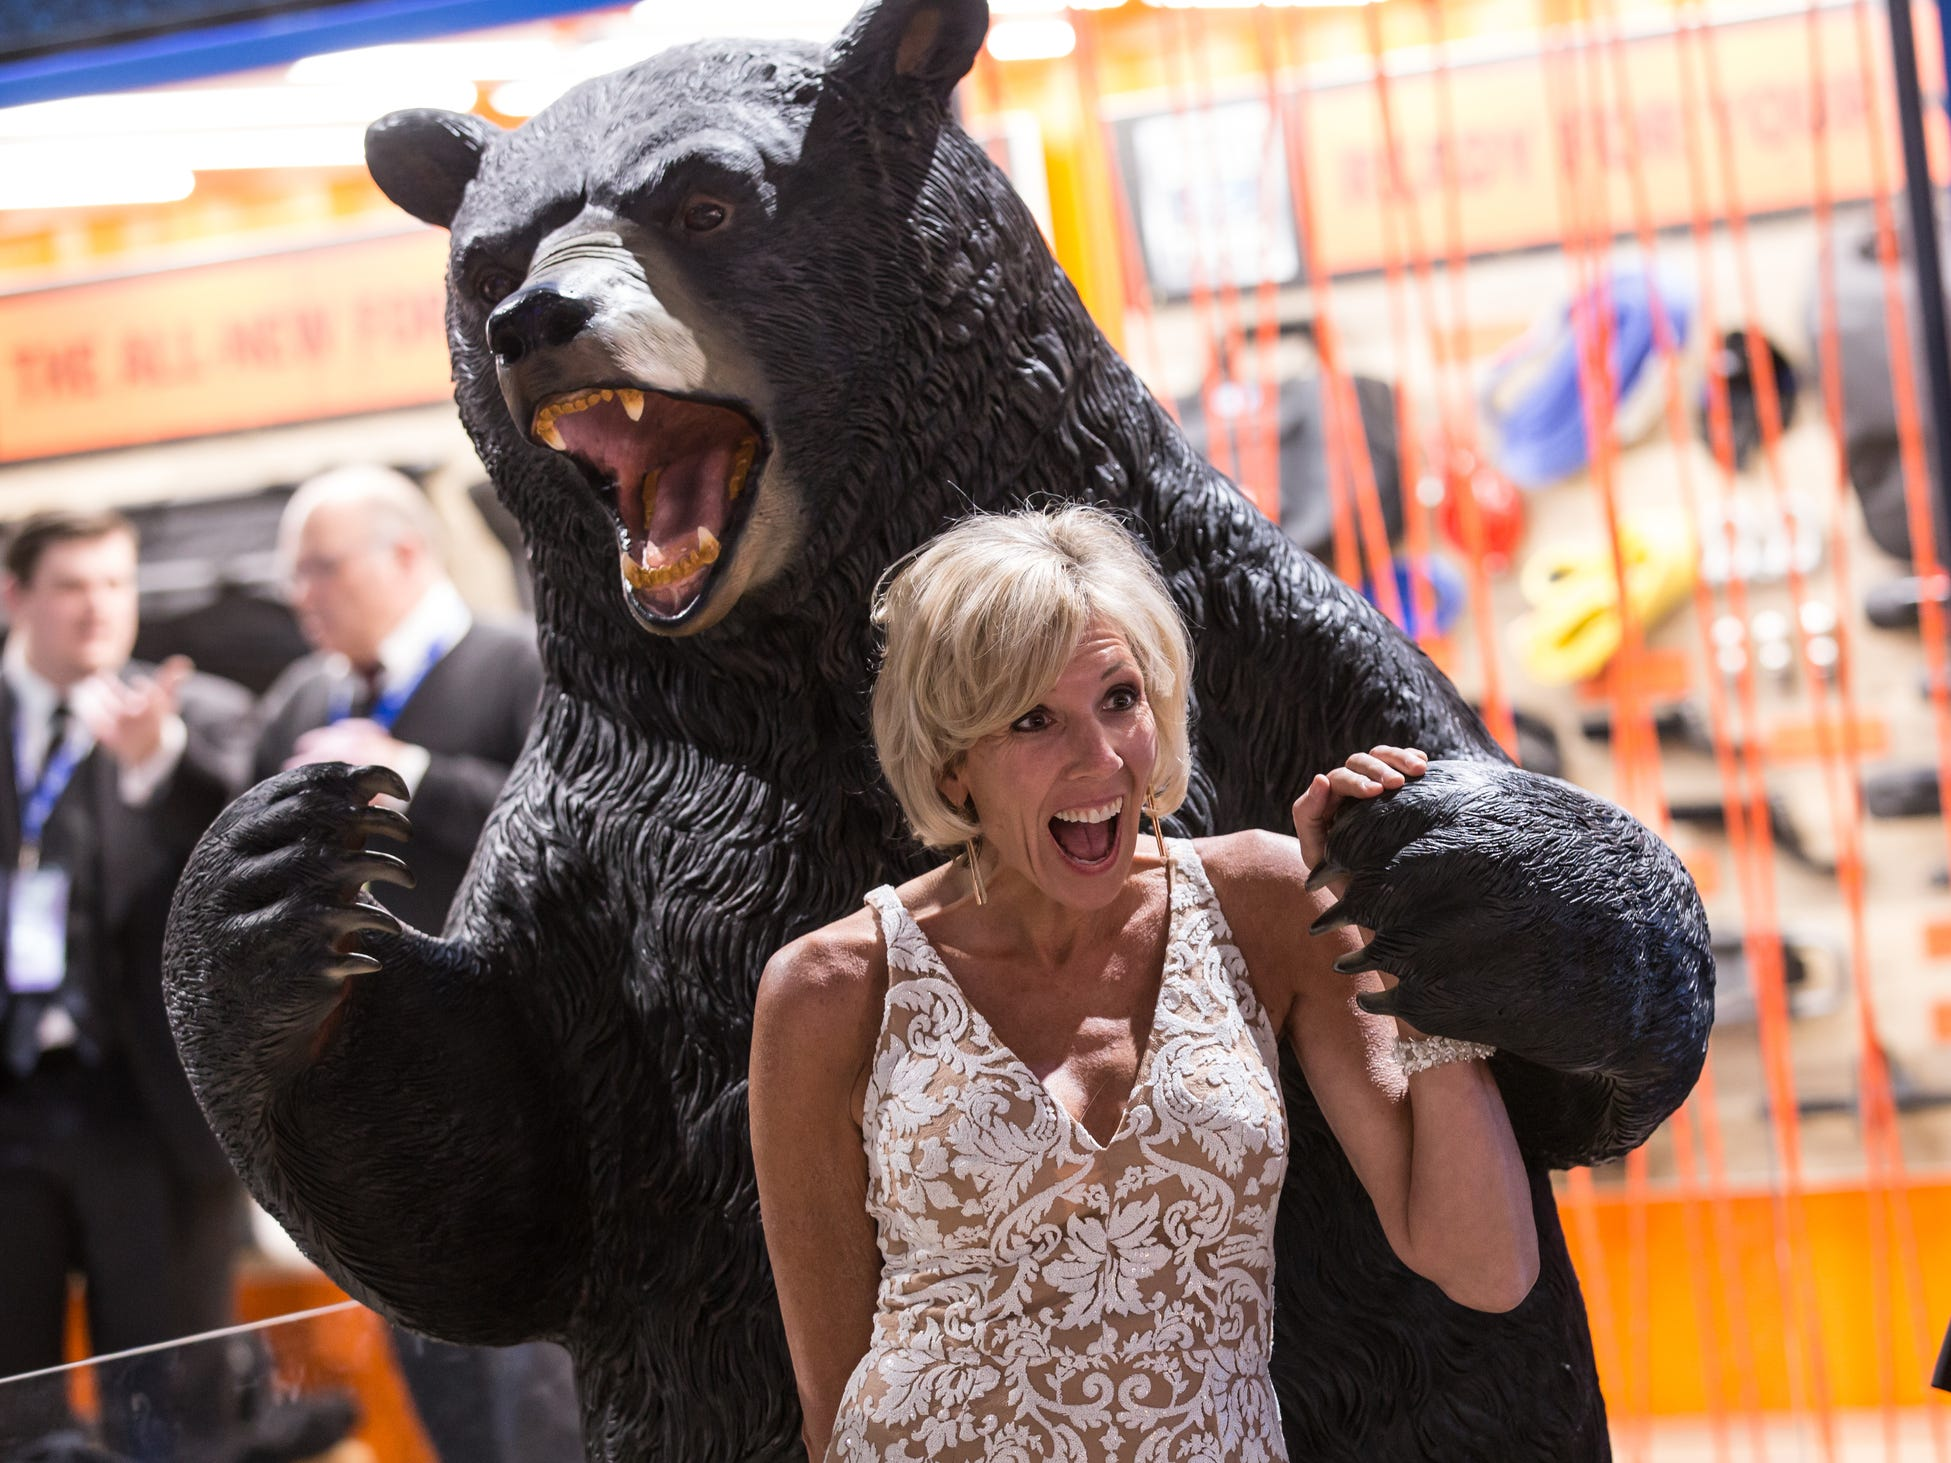 A woman poses with a bear statue in the Ford section during the 2019 North American International Auto Show Charity Preview at Cobo Center in Detroit on Friday, January 18, 2019.